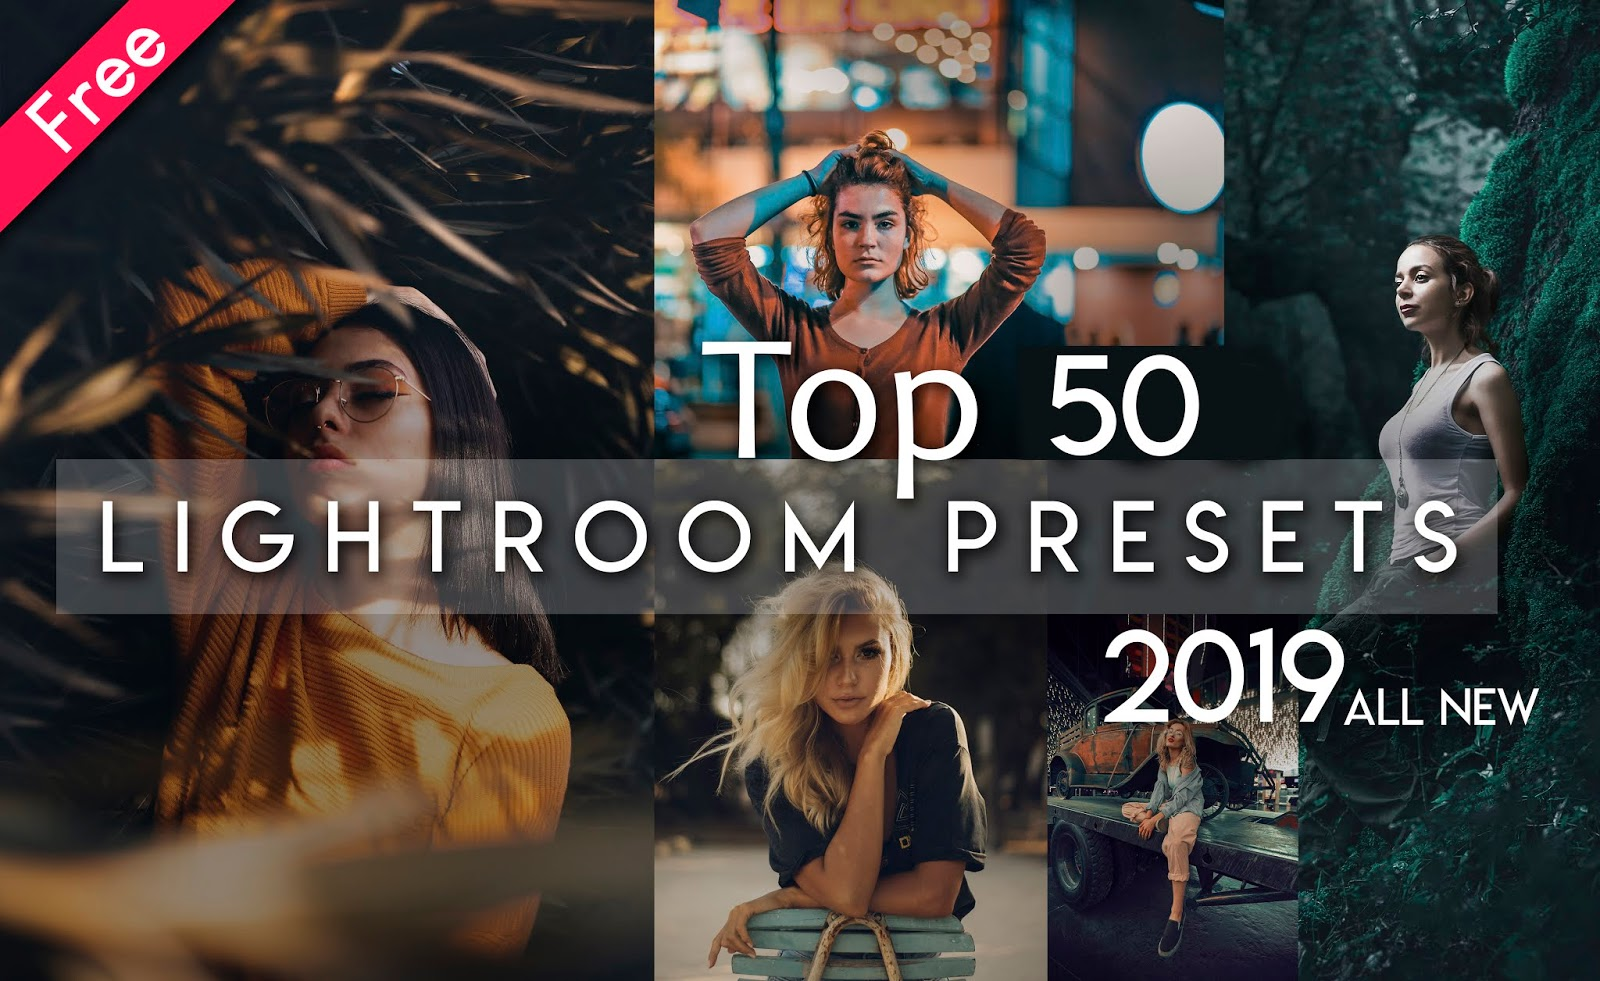 Download Top 50 Lightroom Presets of 2019 for Free | Download Free Top 50 Lightroom Preset Pack of 2019